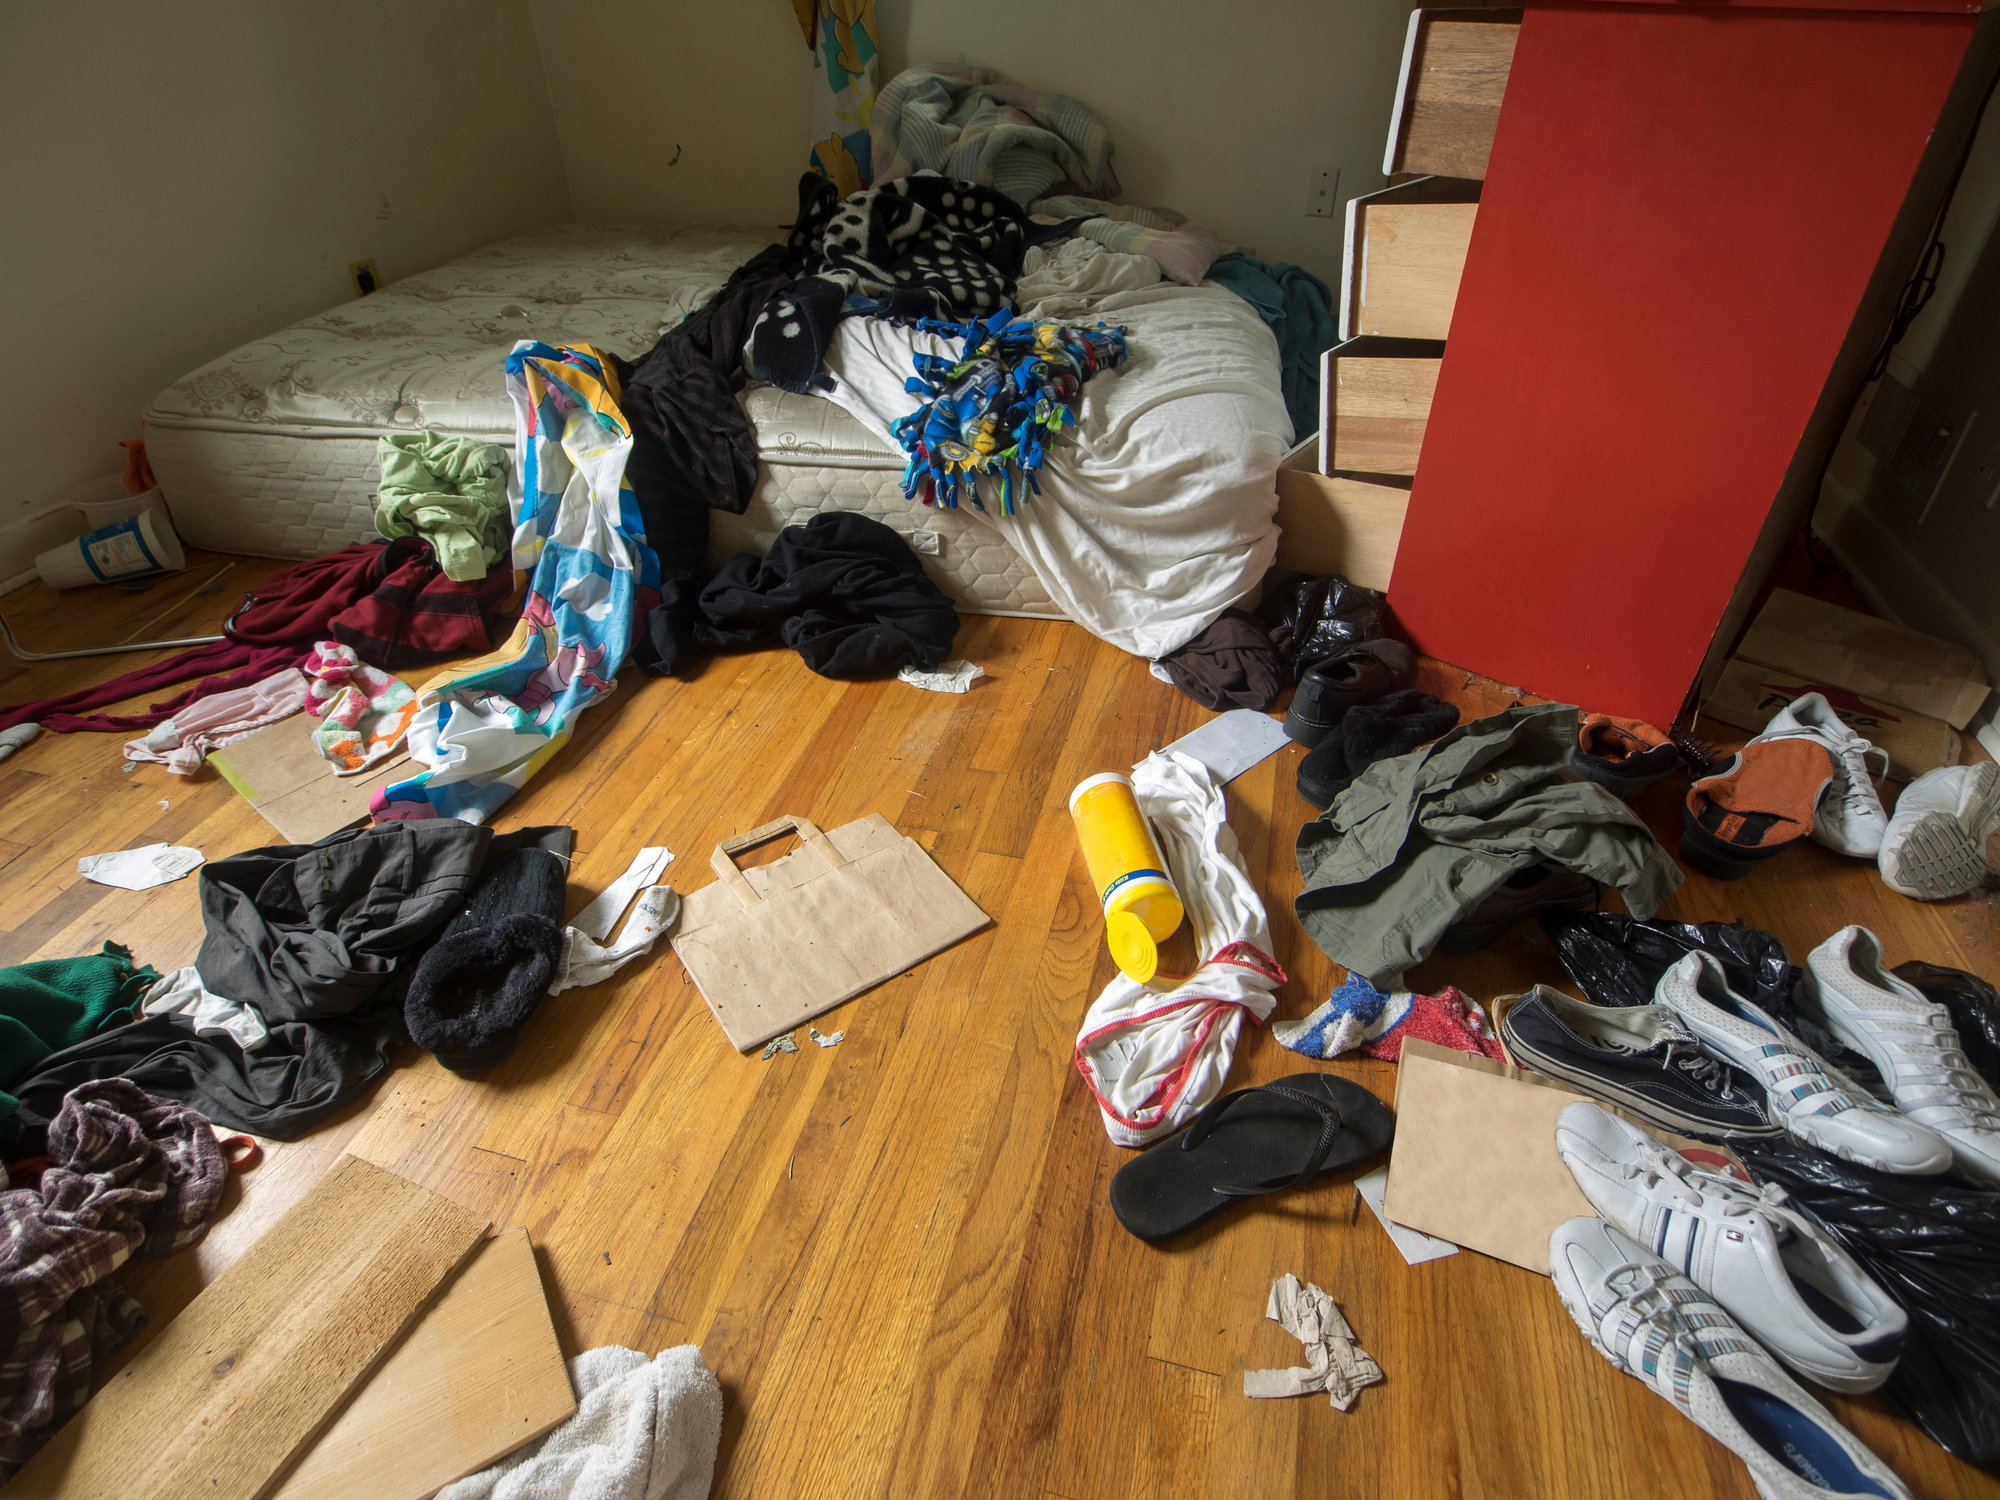 Messy room with shoes and clothes inside a foreclosed house in Portland, Oregon.